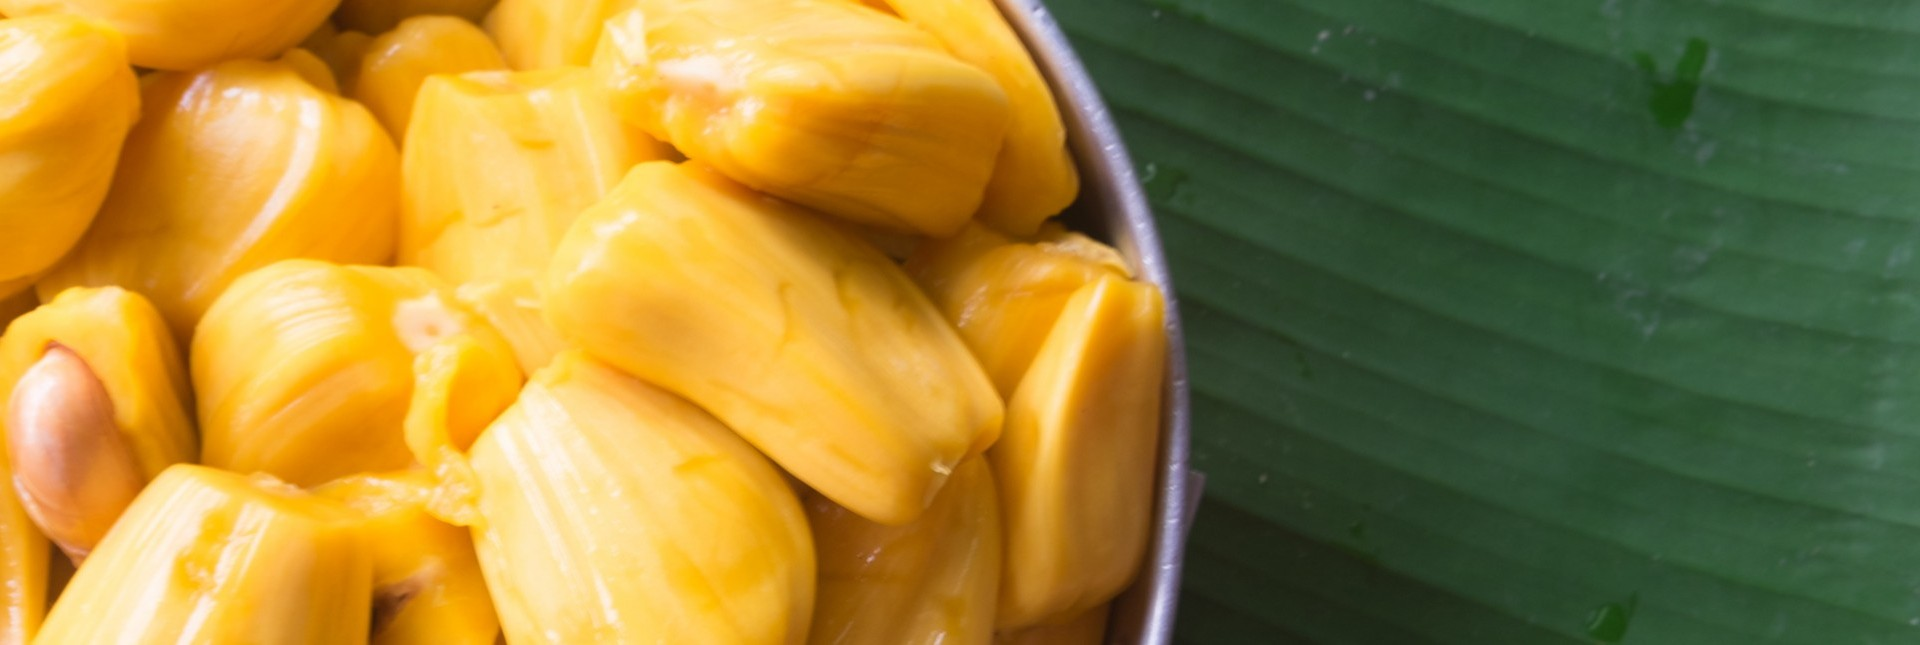 How Is Jackfruit Eaten & How Does It Taste?